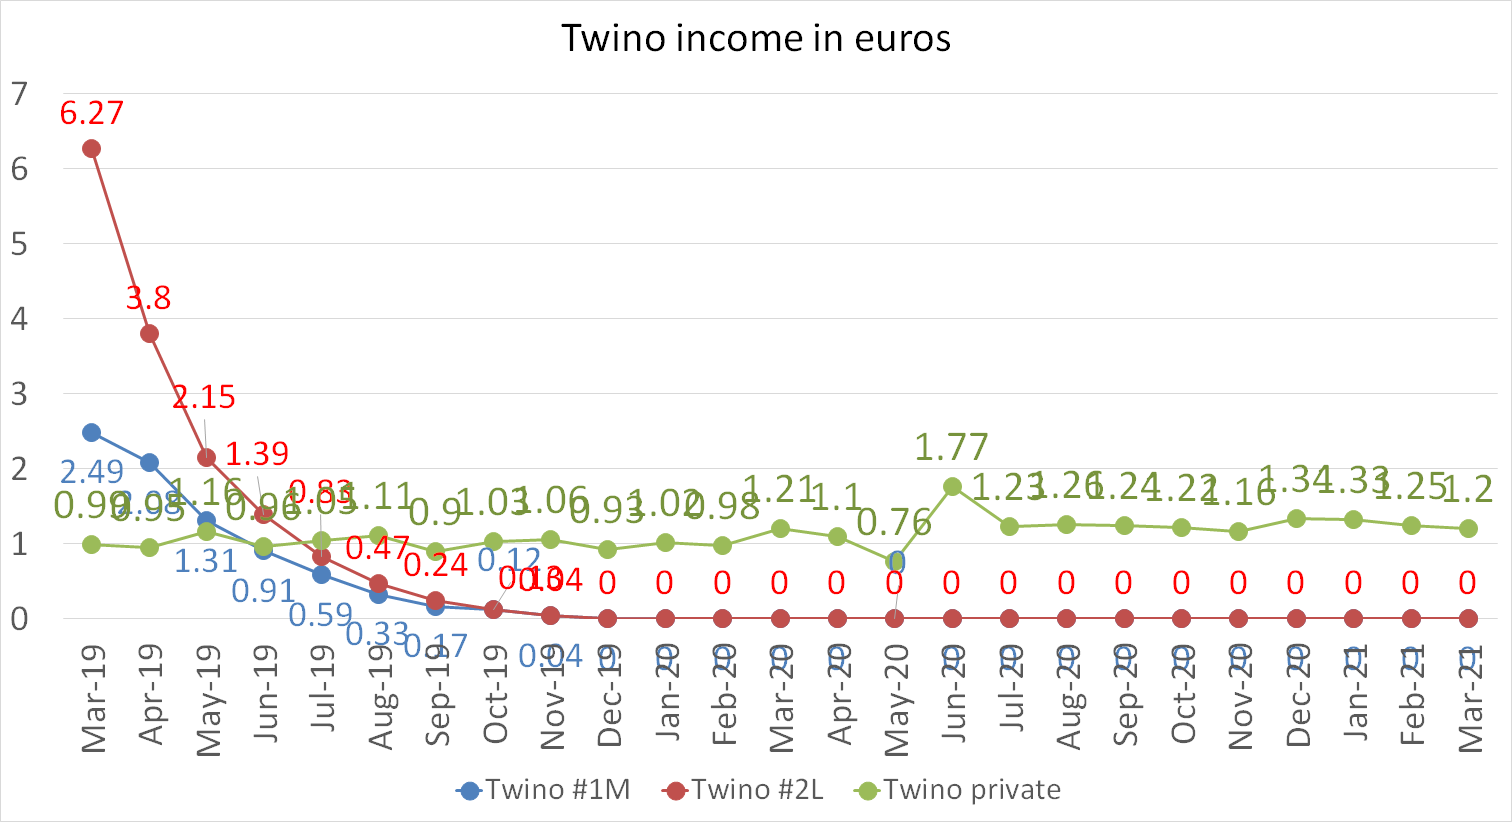 Twino income in euros march 2021